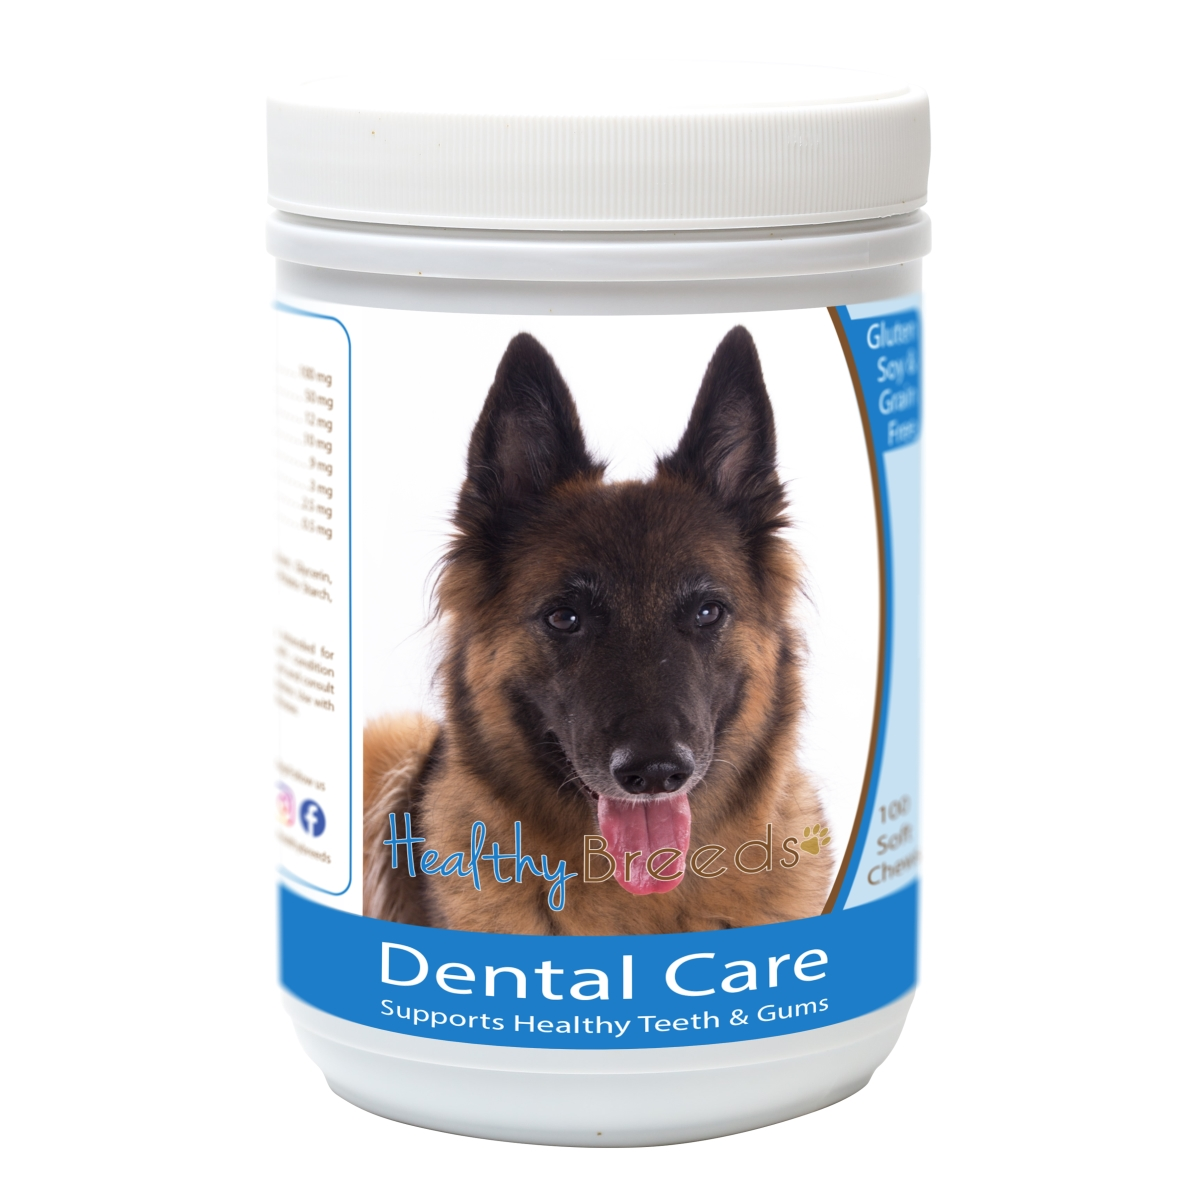 Healthy Breeds 840235163367 Belgian Tervuren Breath Care Soft Chews for Dogs - 60 Count